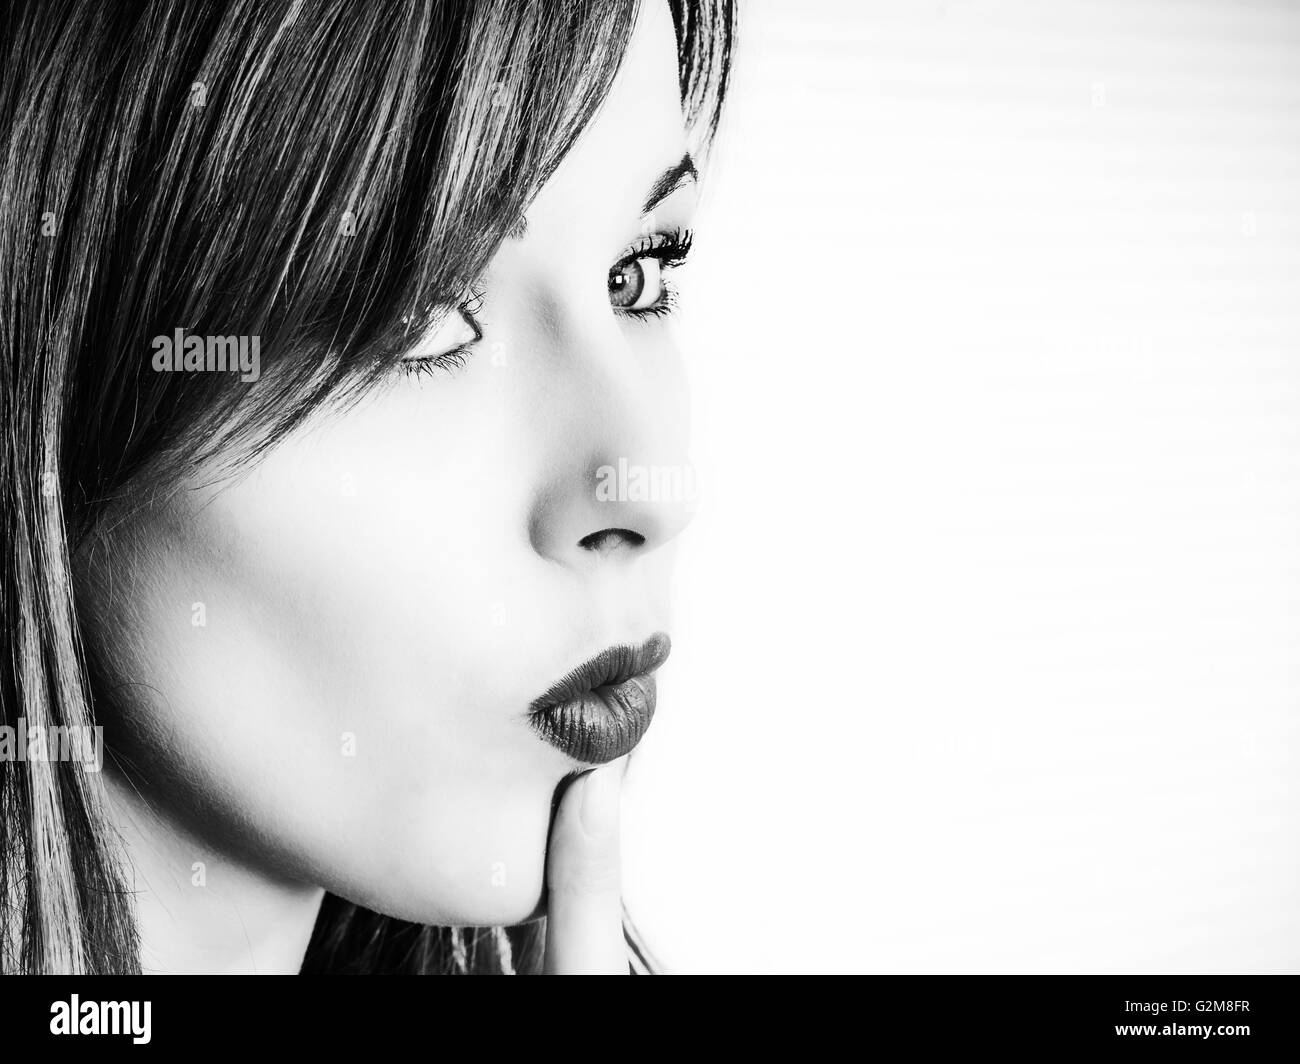 Black and White Portrait of a Young Woman Considering Choices or Options For Her Future - Stock Image